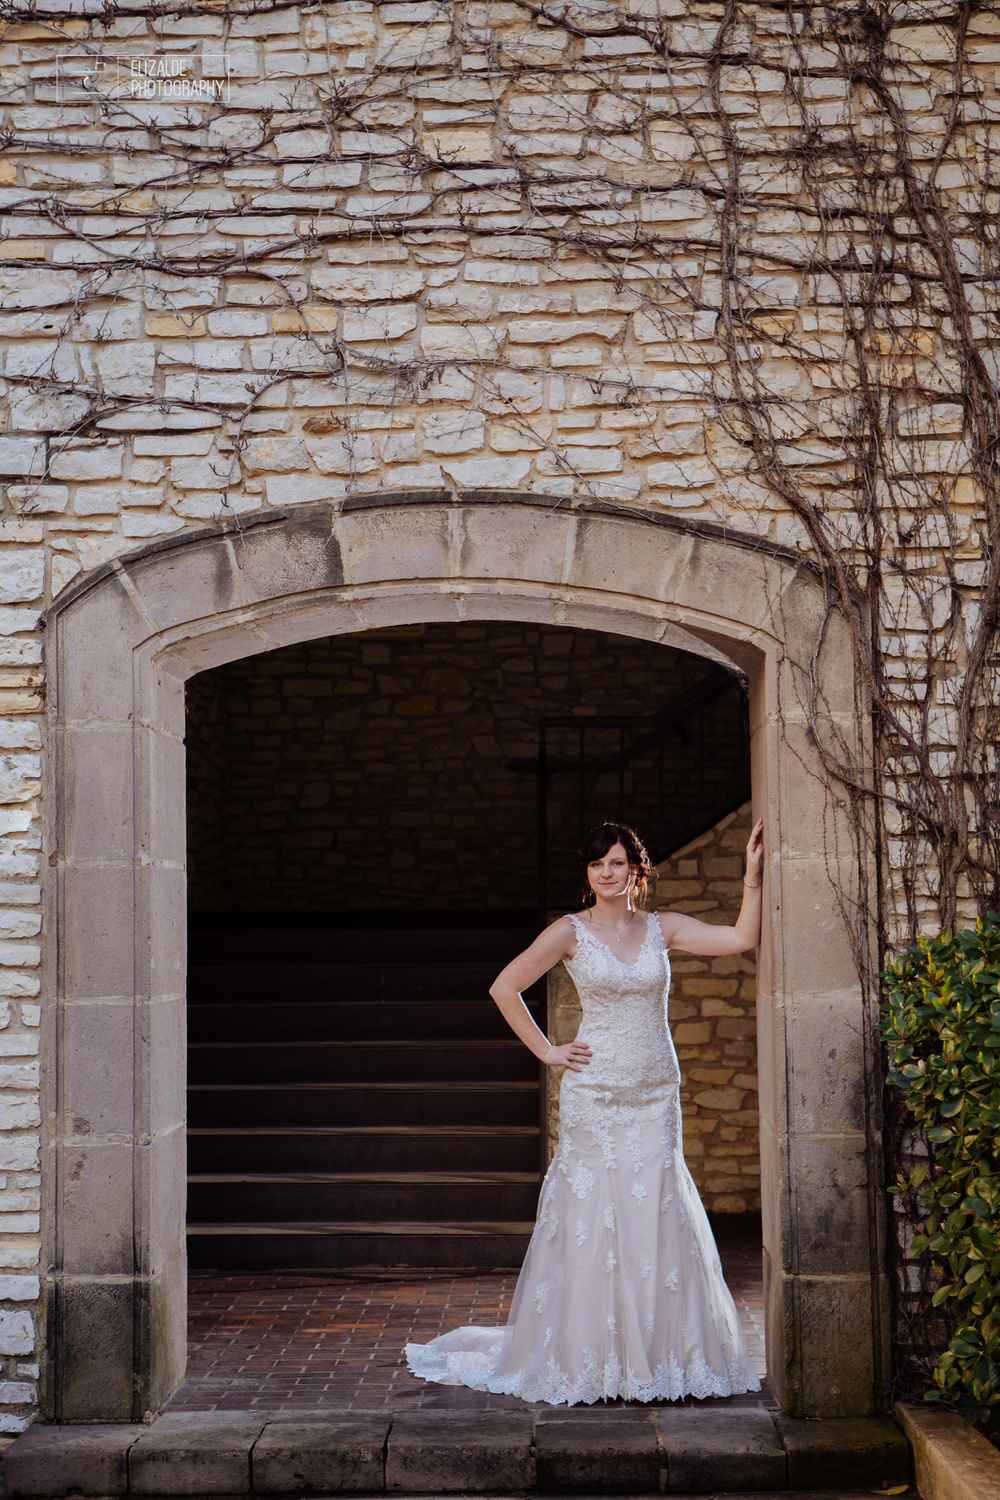 Kelly_Bridals_Omni_DFW_wedding_blog-3.jpg